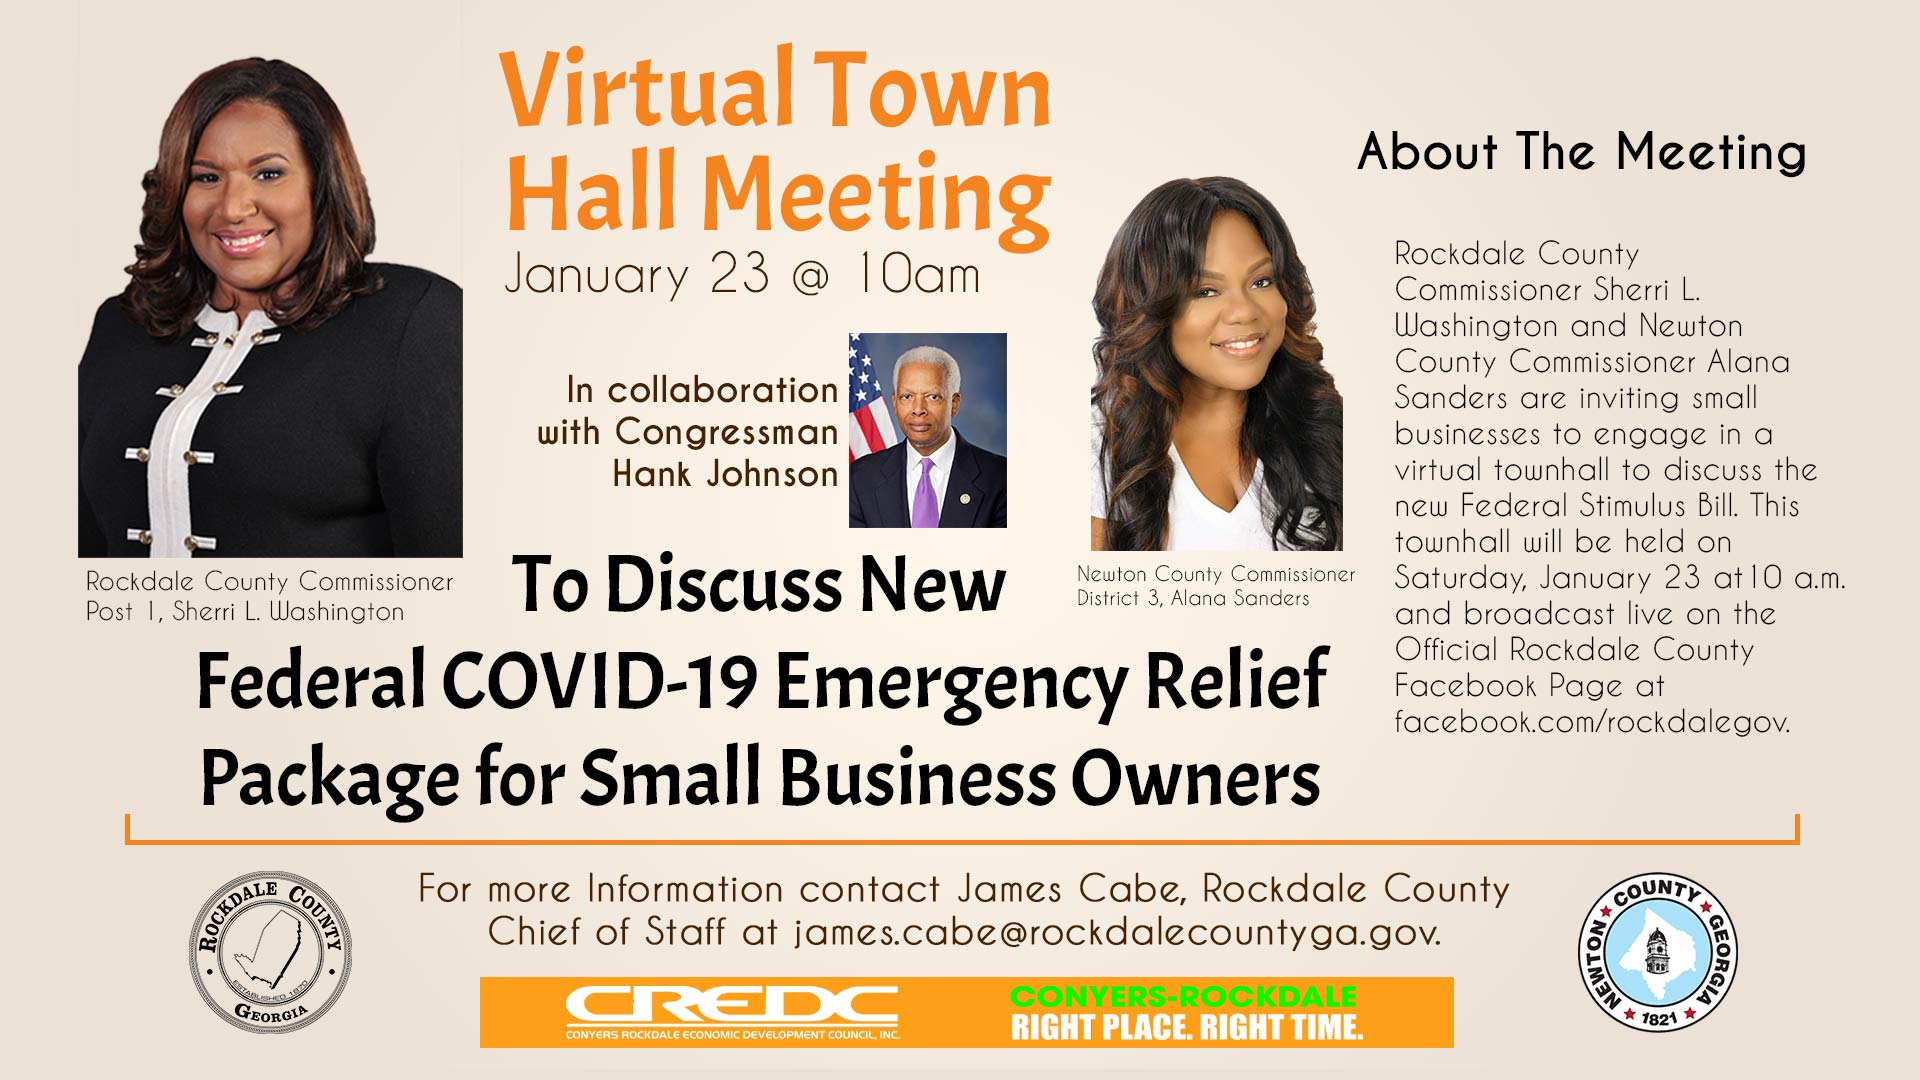 Virtual Town Hall Meeting @ Rockdale County Government Official Facebook Page